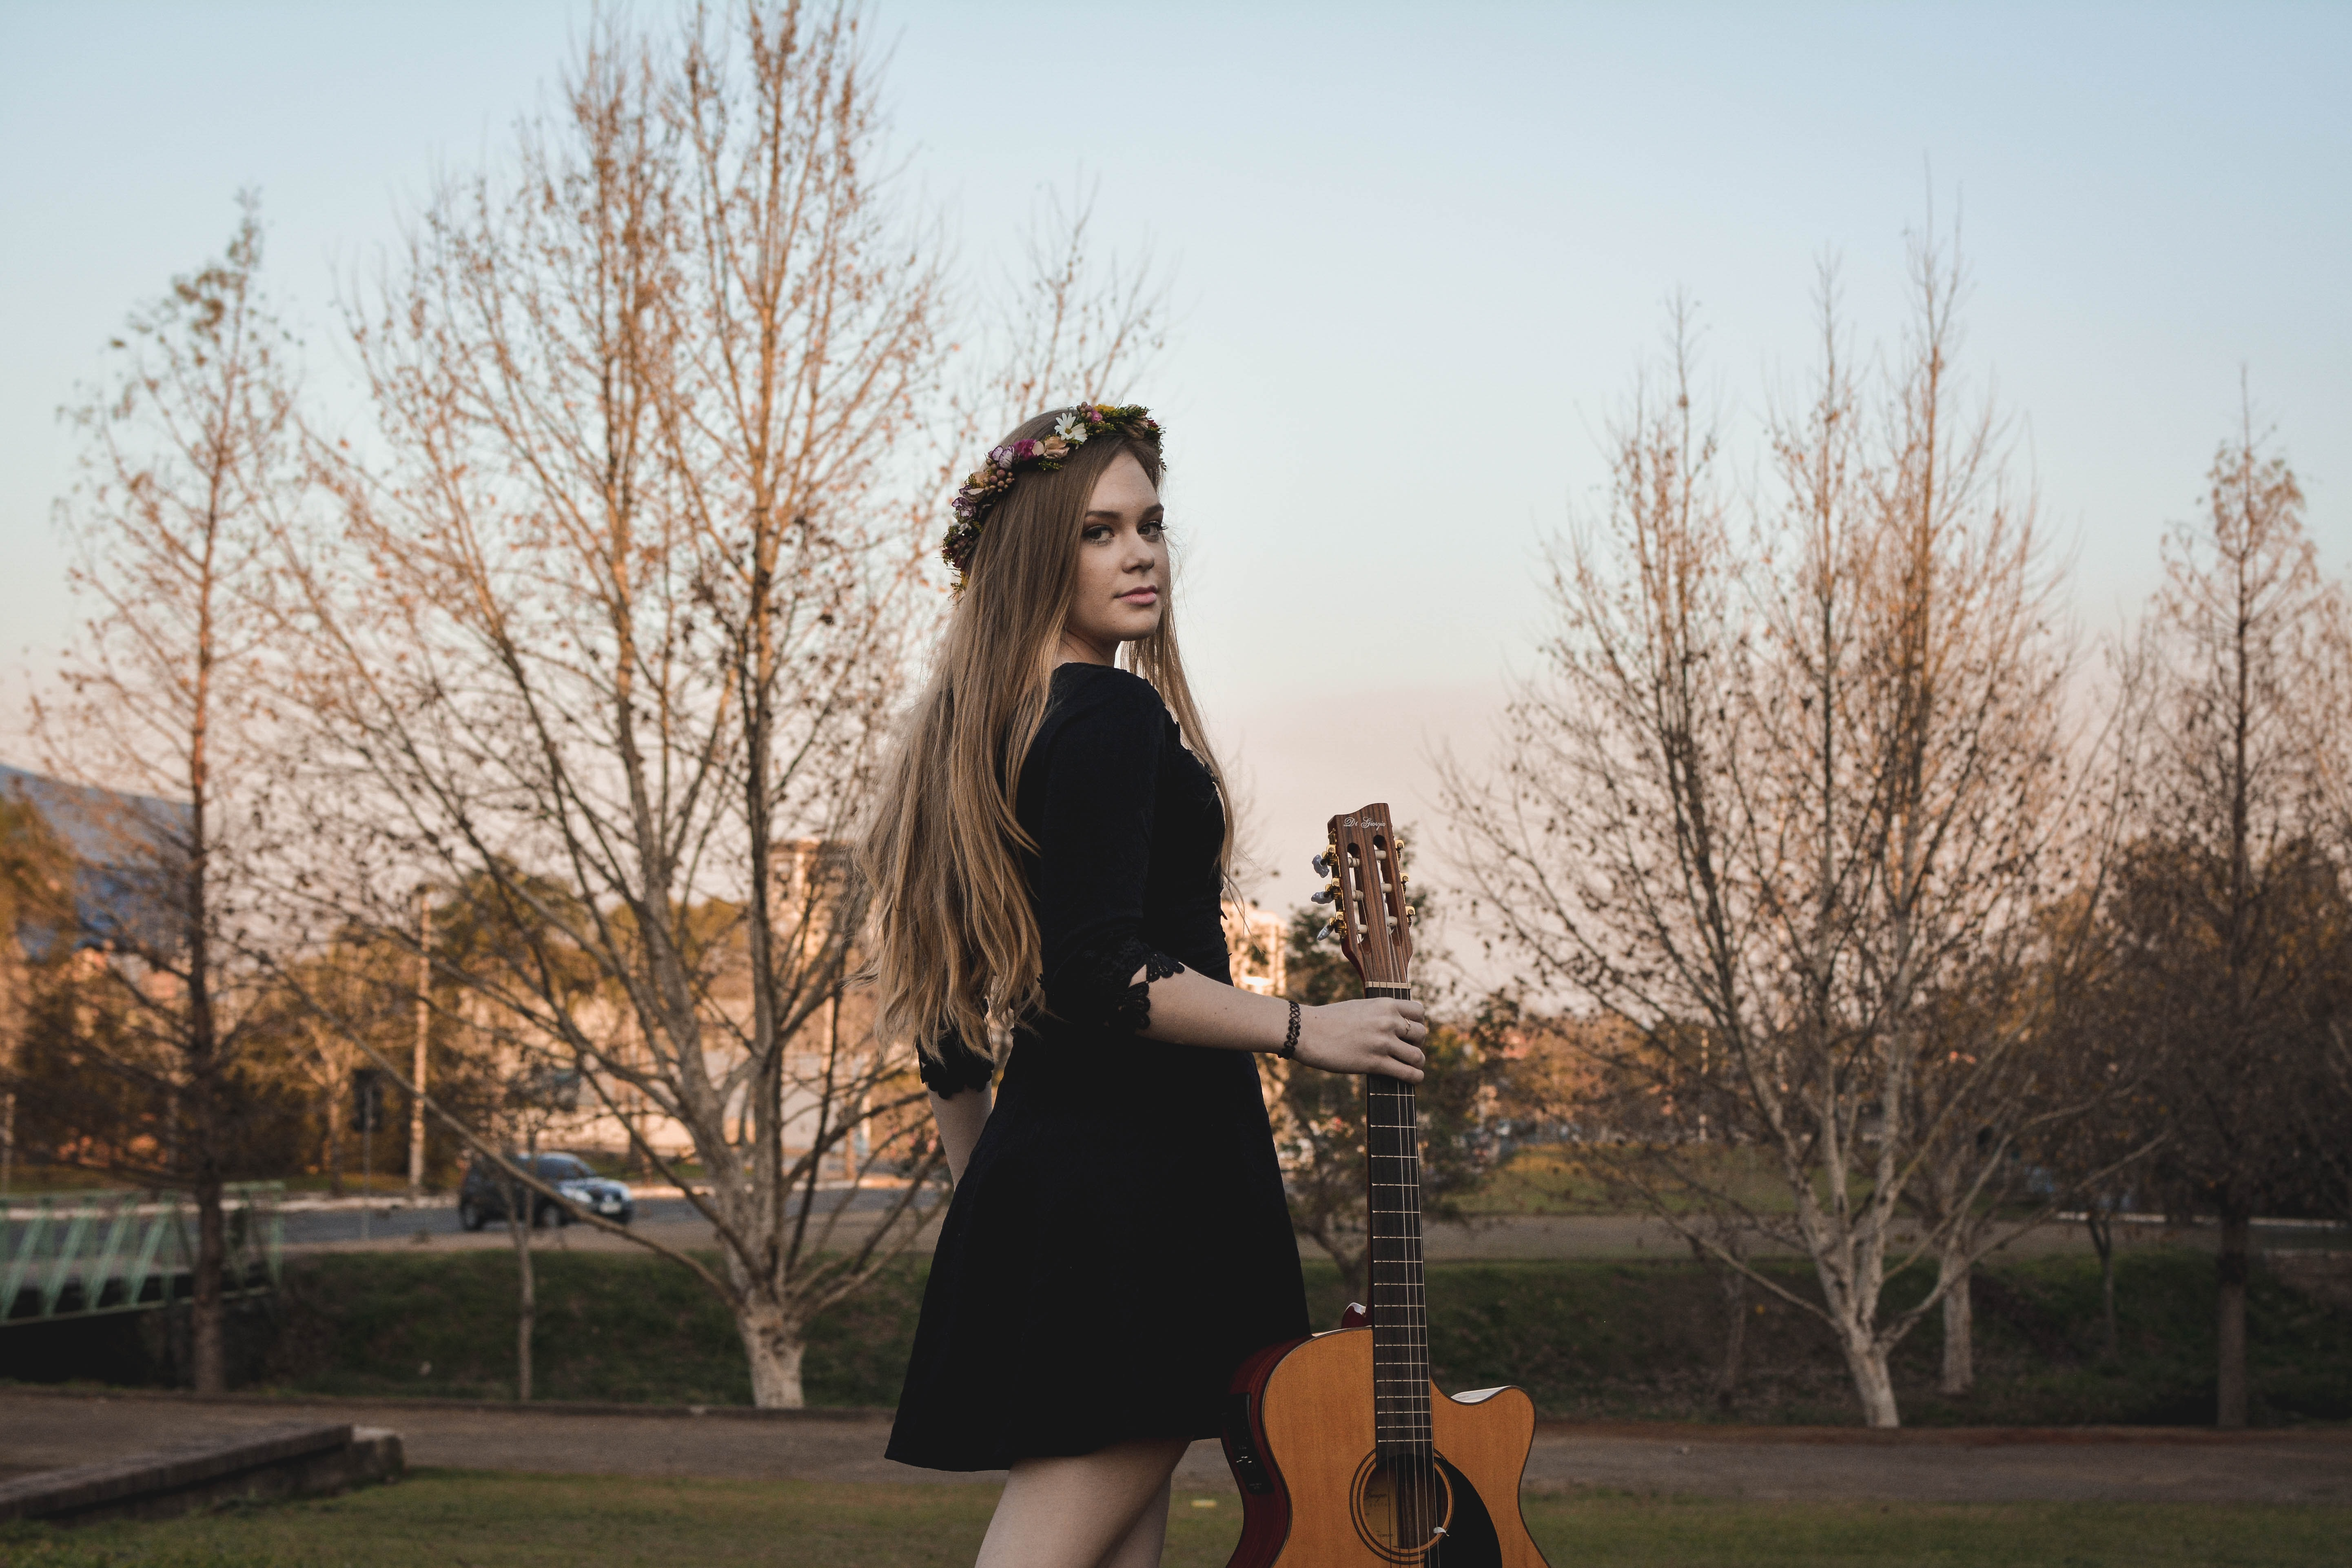 woman standing on lawn while holding classical guitar